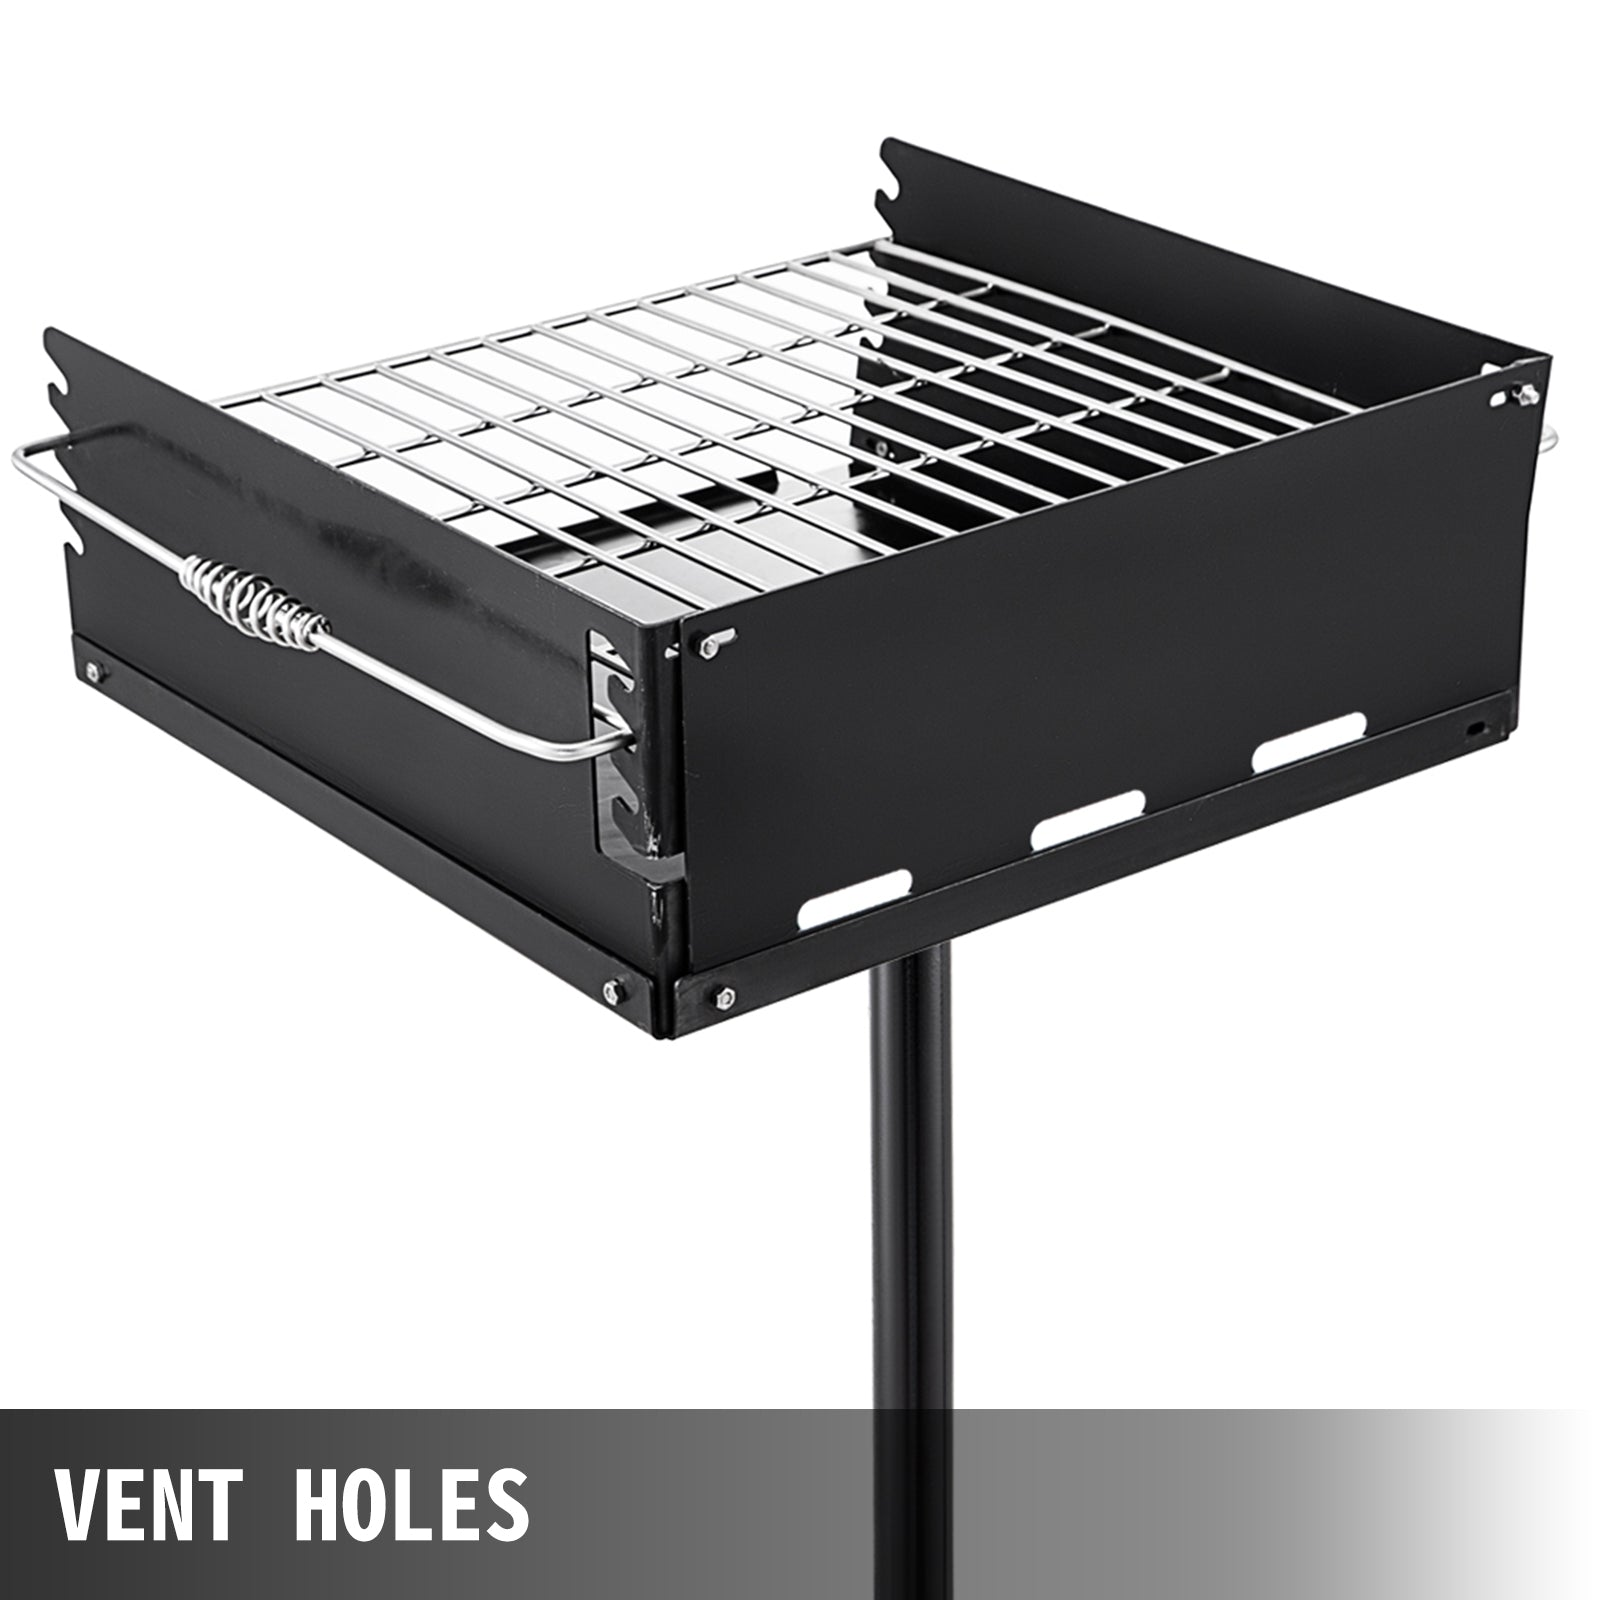 Outdoor Park-style Charcoal Grill For Camping And Cookouts, Bbq Accessories